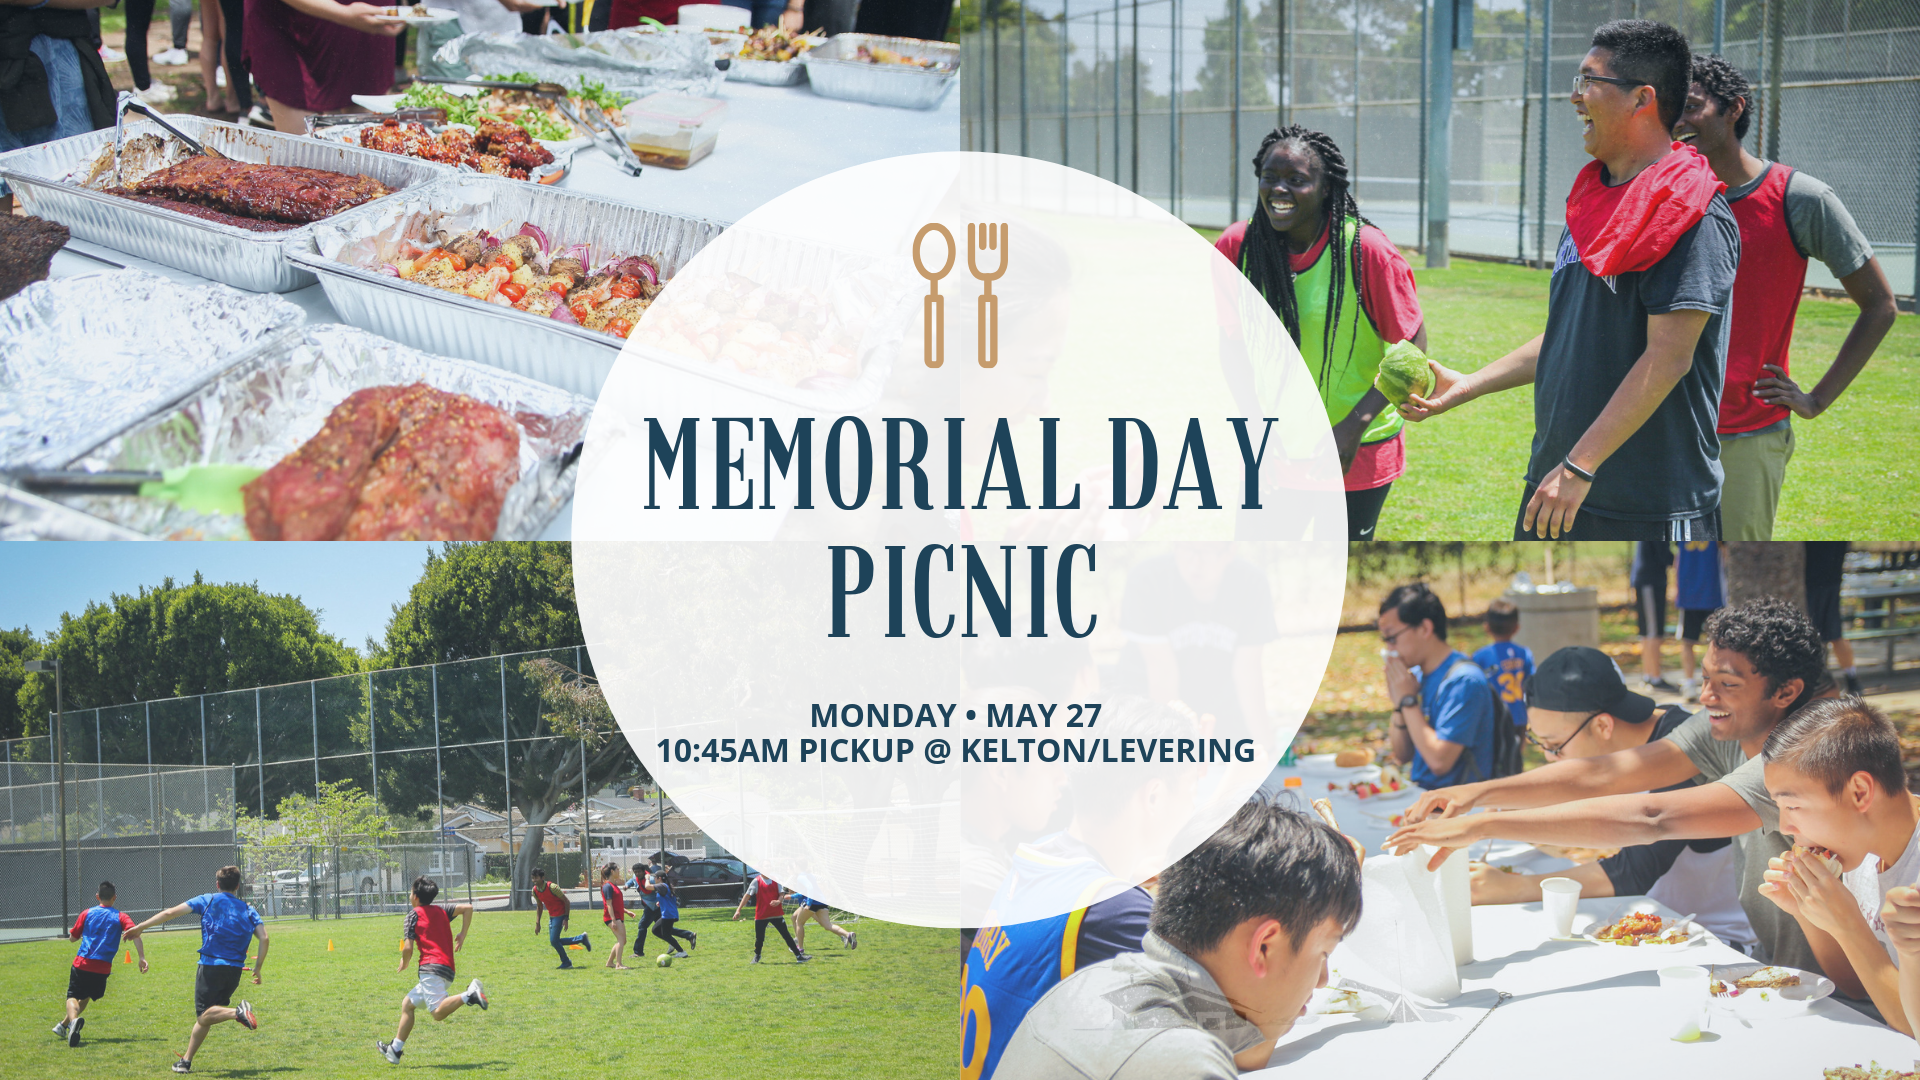 Join us this  Monday, May 27th  for our Memorial Day Picnic. There's going to be great food and a lot of fun! Rides will be at  10:45 @ Kelton & Levering .